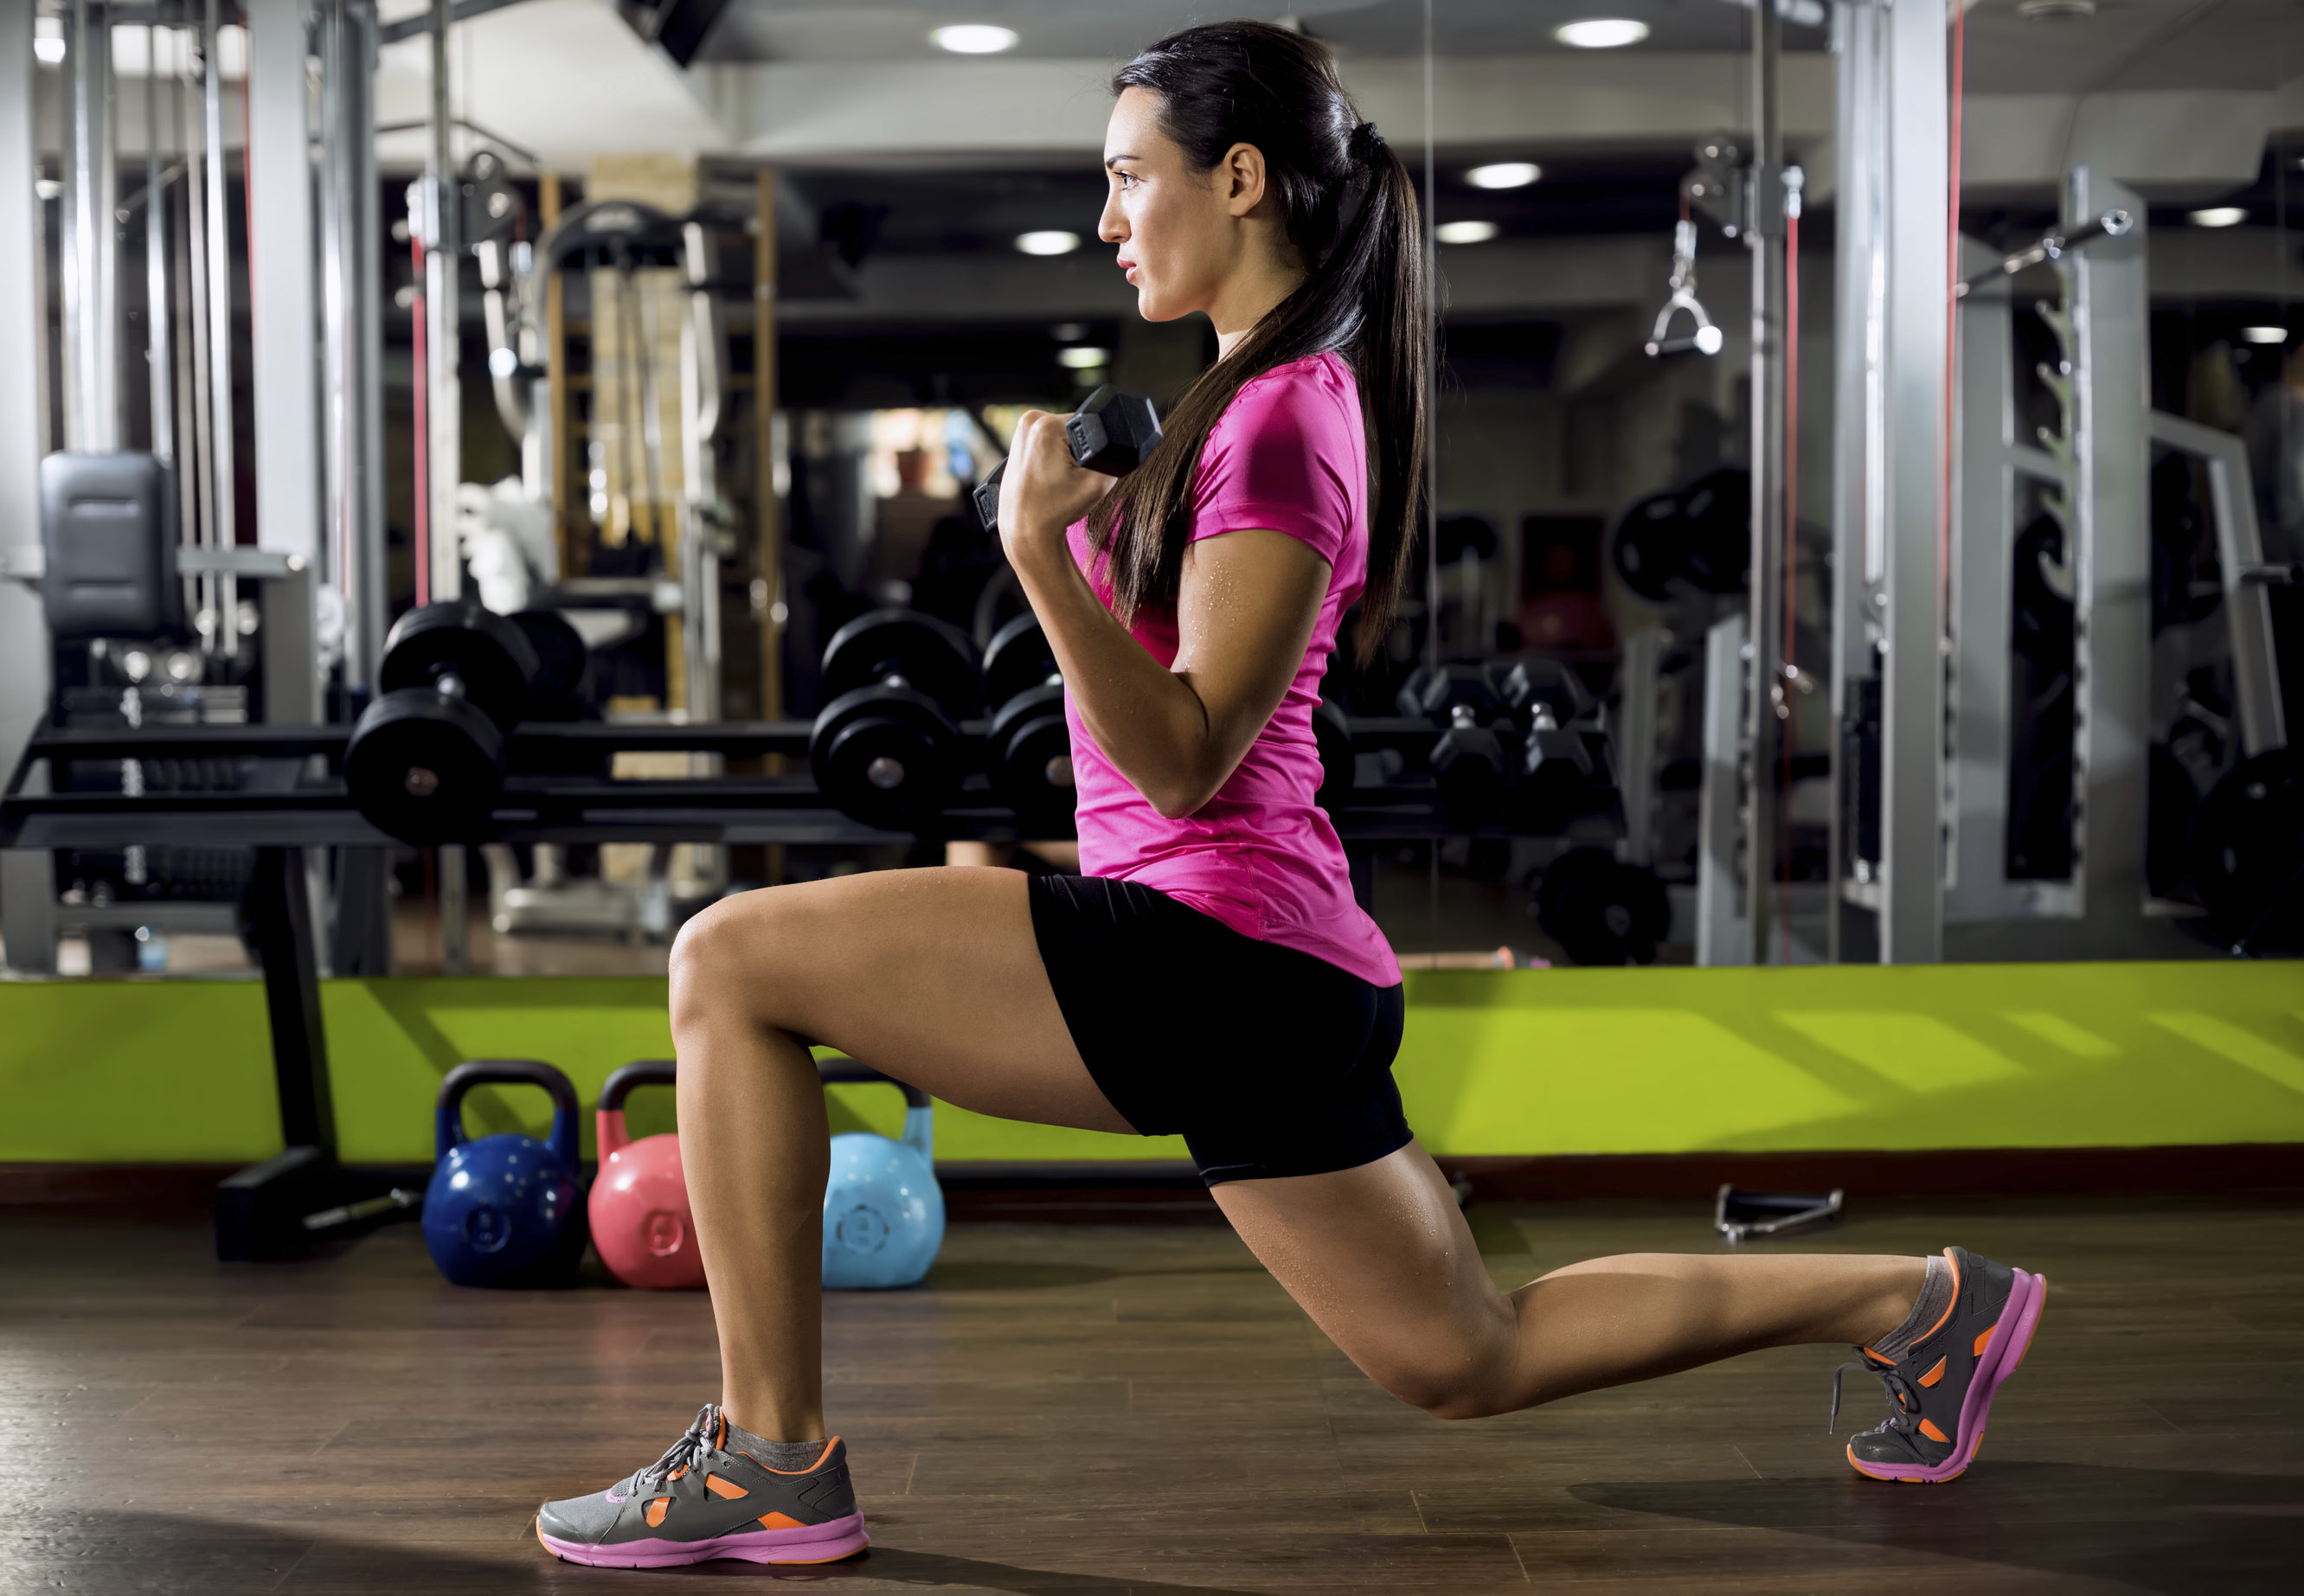 A Short, Comprehensive, and Effective Summer Workout for the Gym